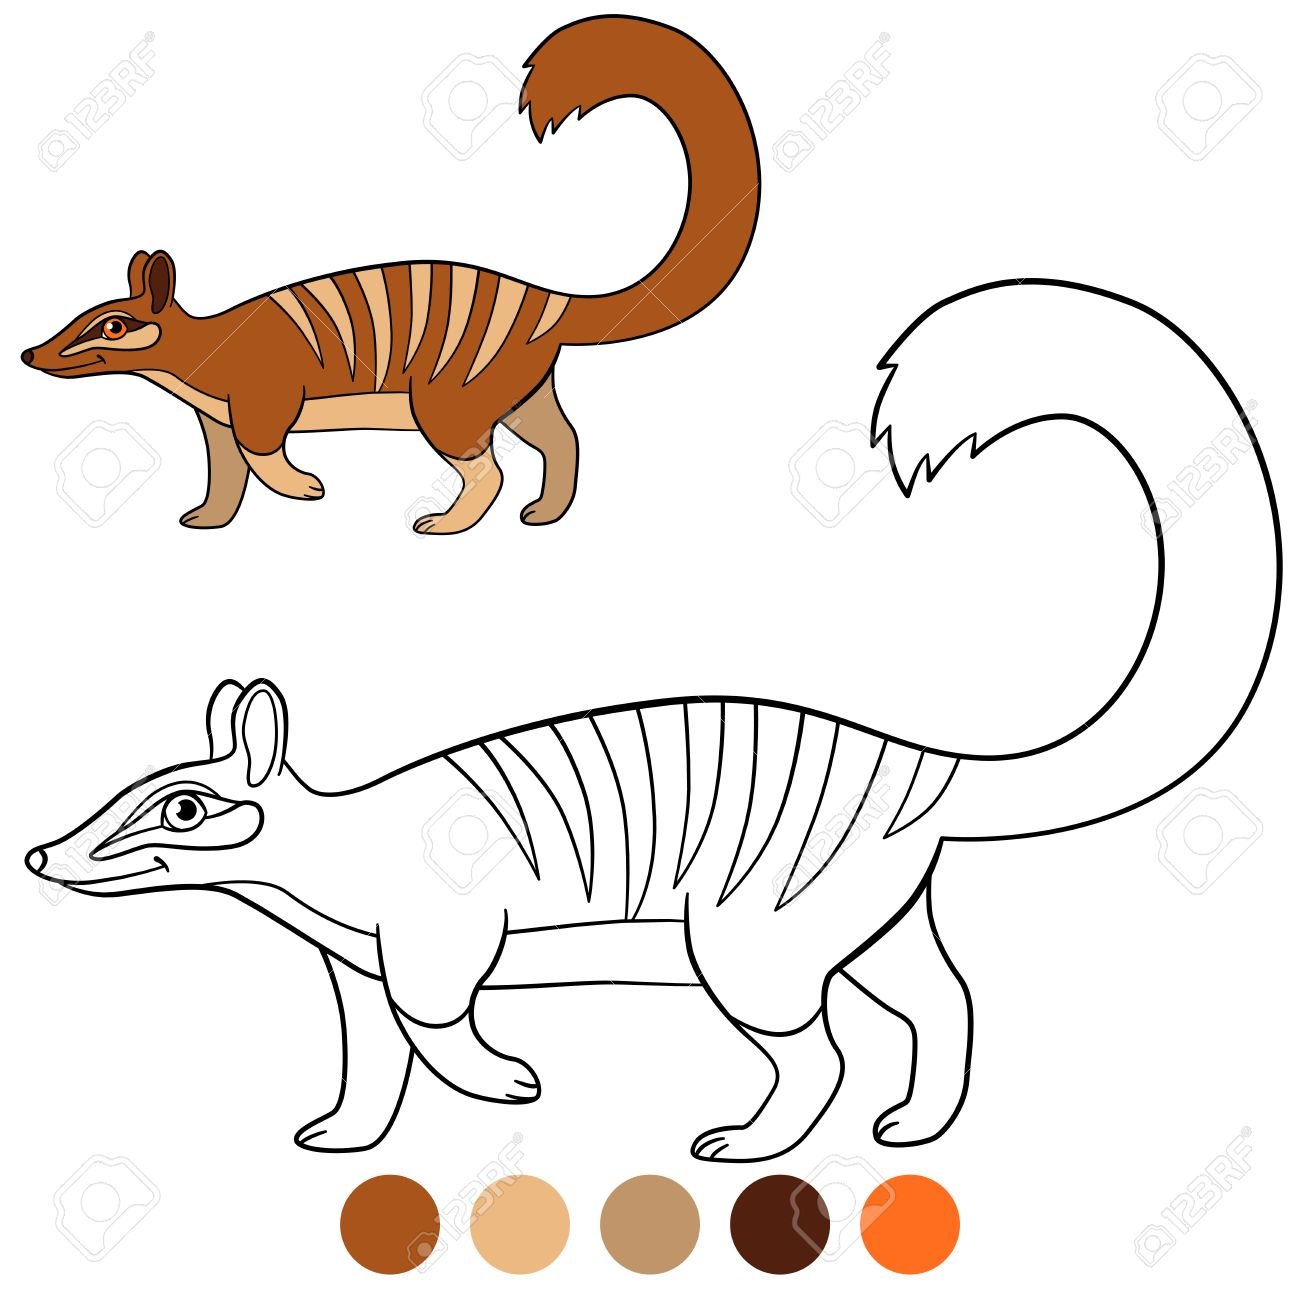 Coloring Page. Little Cute Numbat Walks And Smiles. Stock Vector   83316056